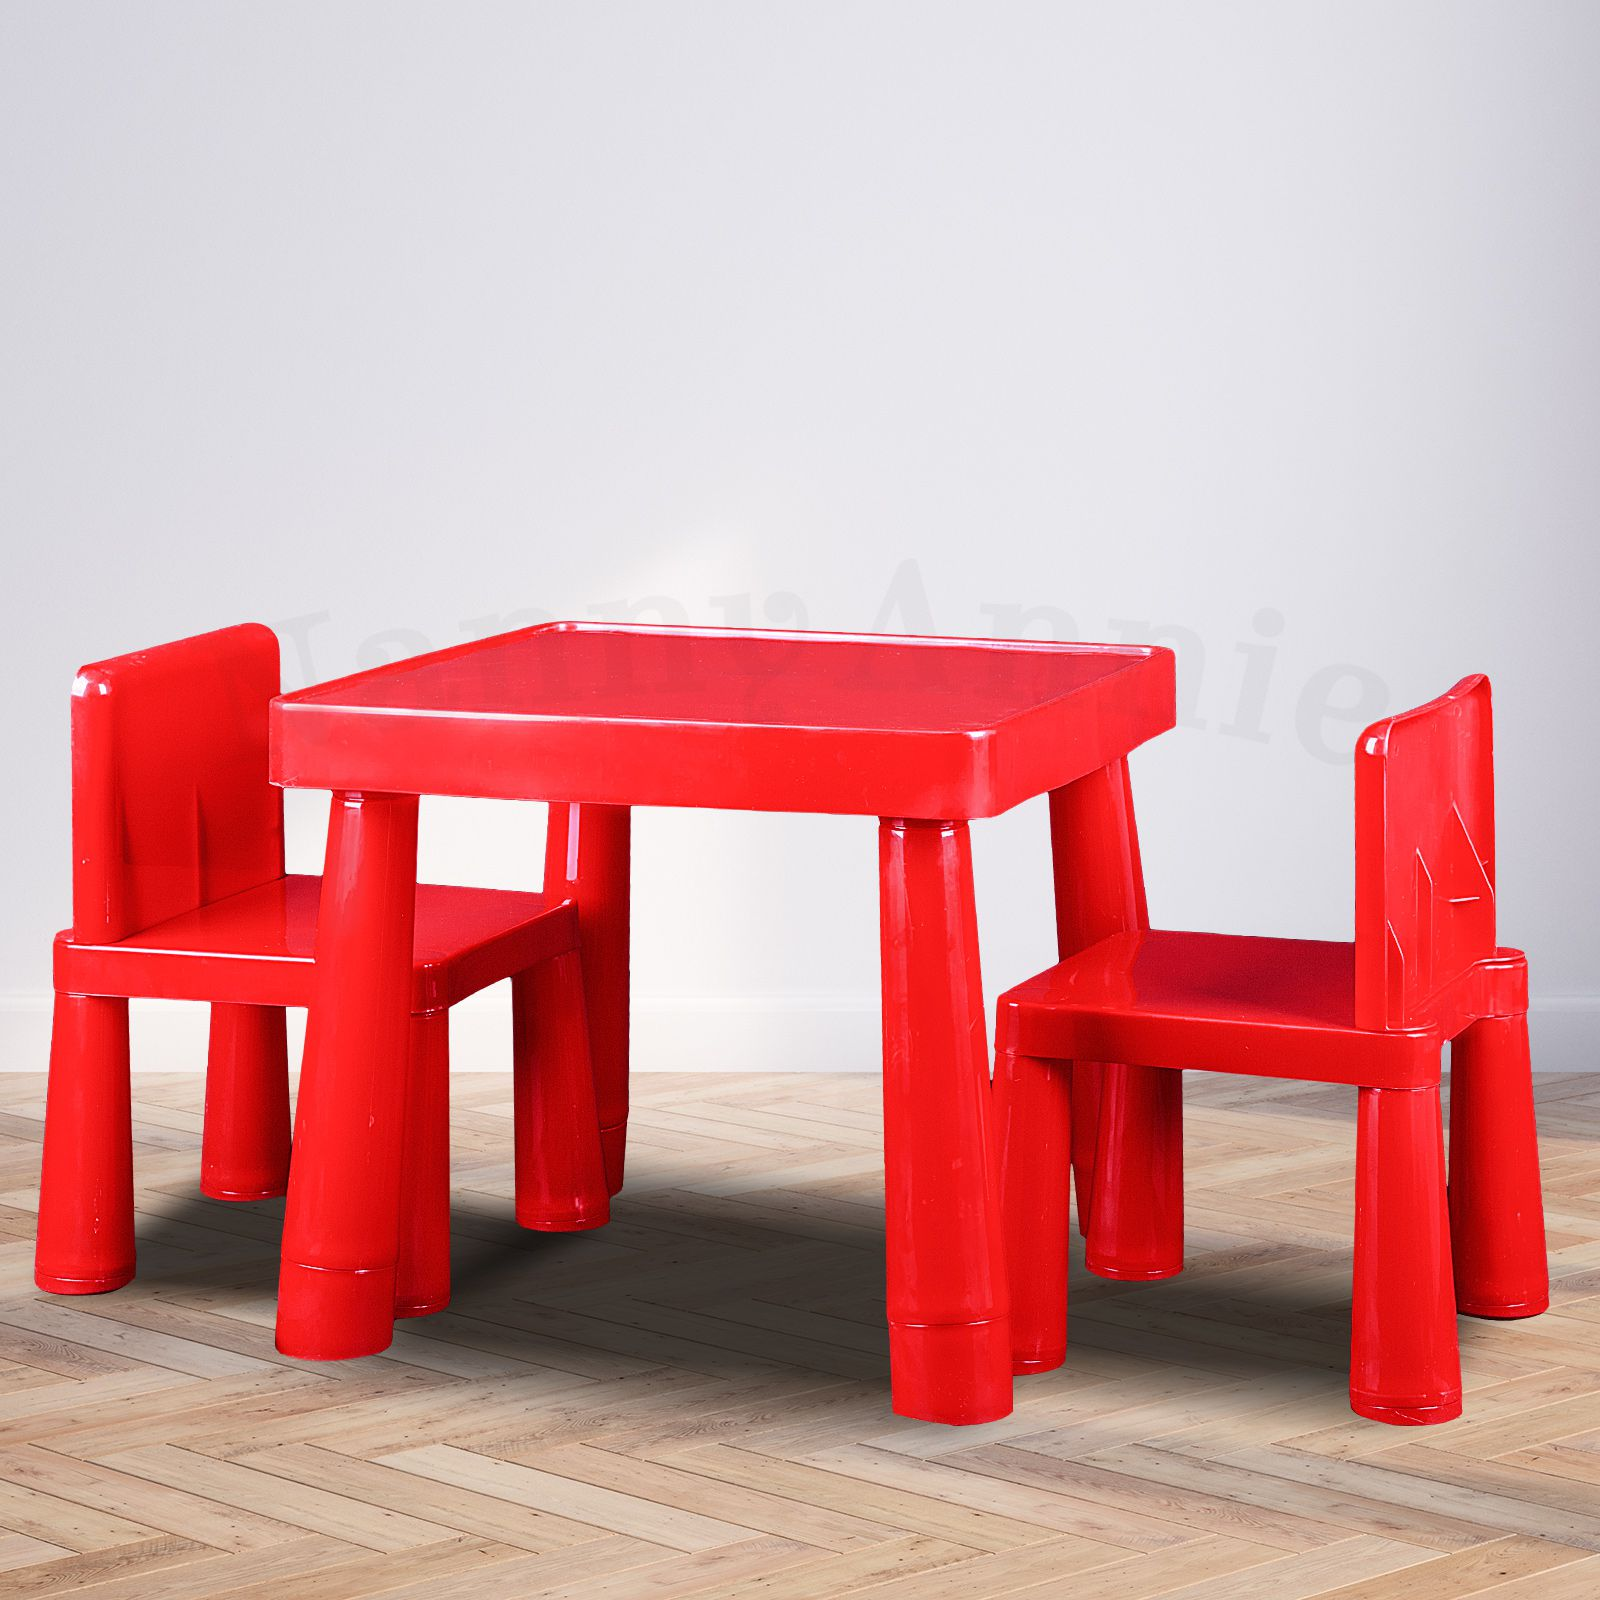 Plastic Table And Chairs For Sale Kids Table And Chair Play Furniture Set Plastic Activity